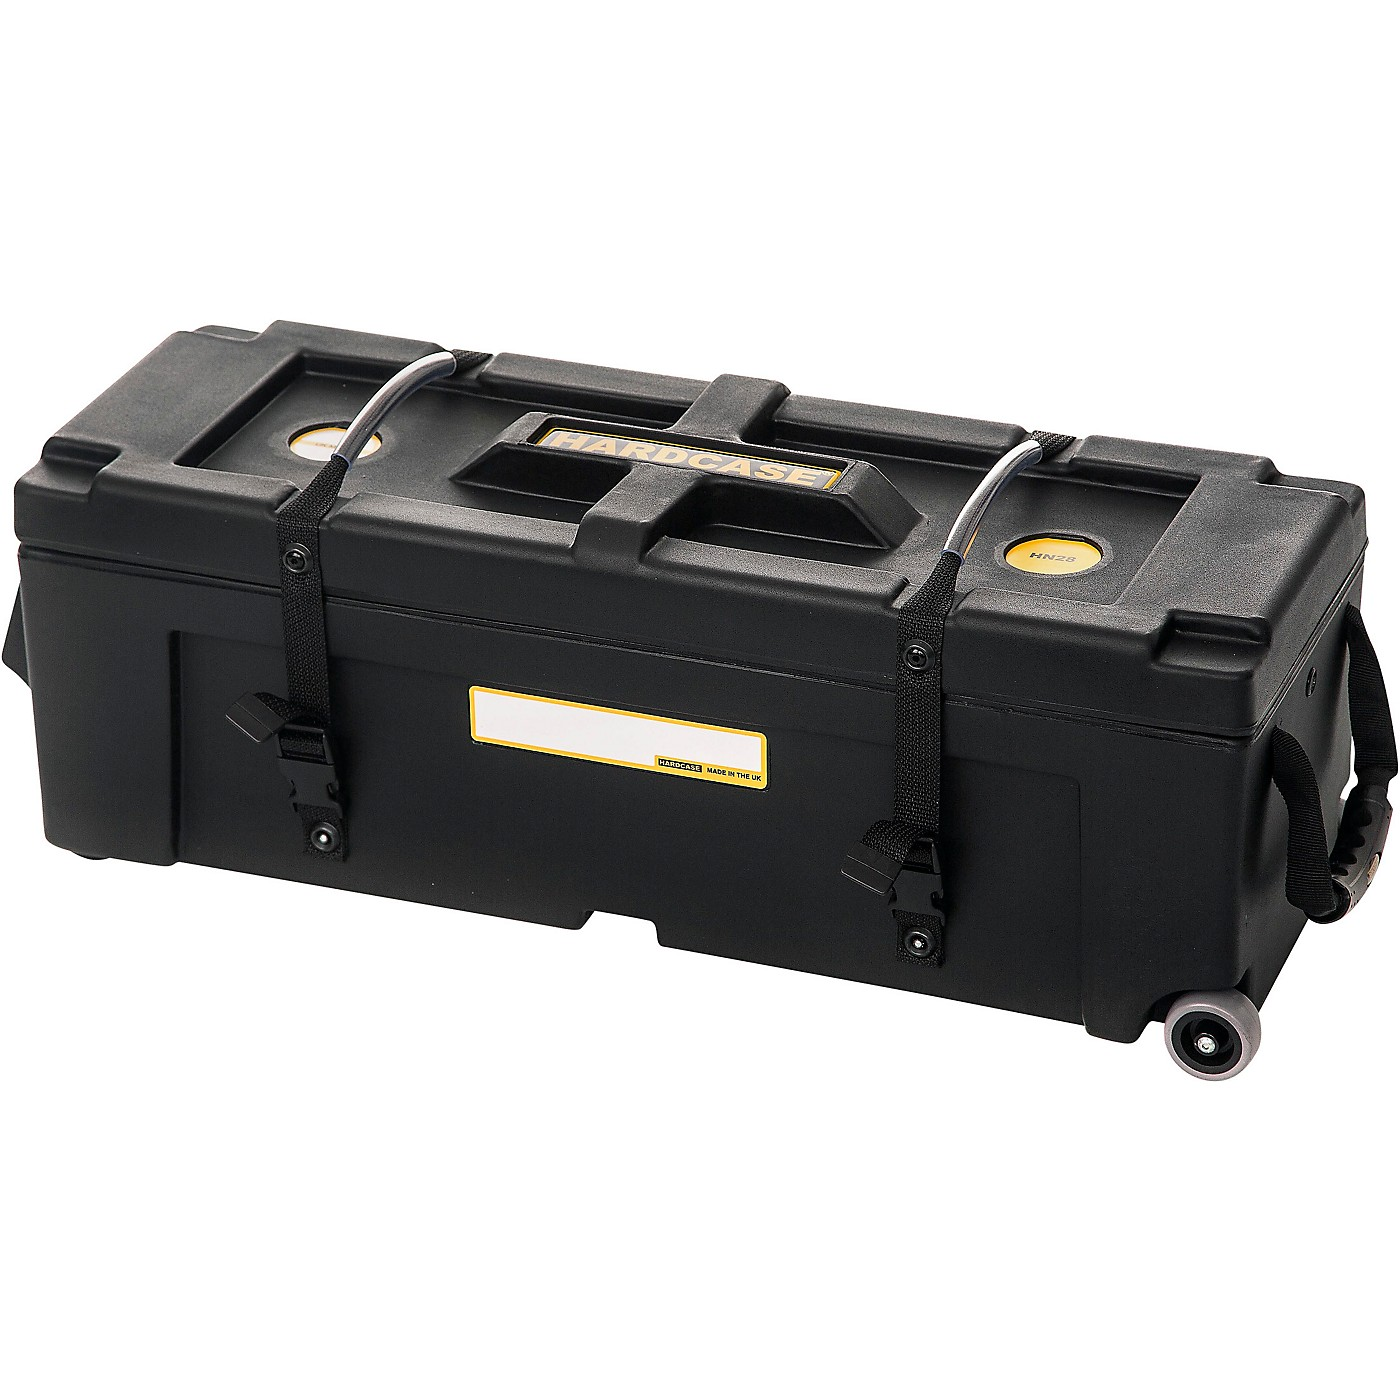 HARDCASE 28 x 10 x 10 in. Hardware Case with Two Wheels thumbnail